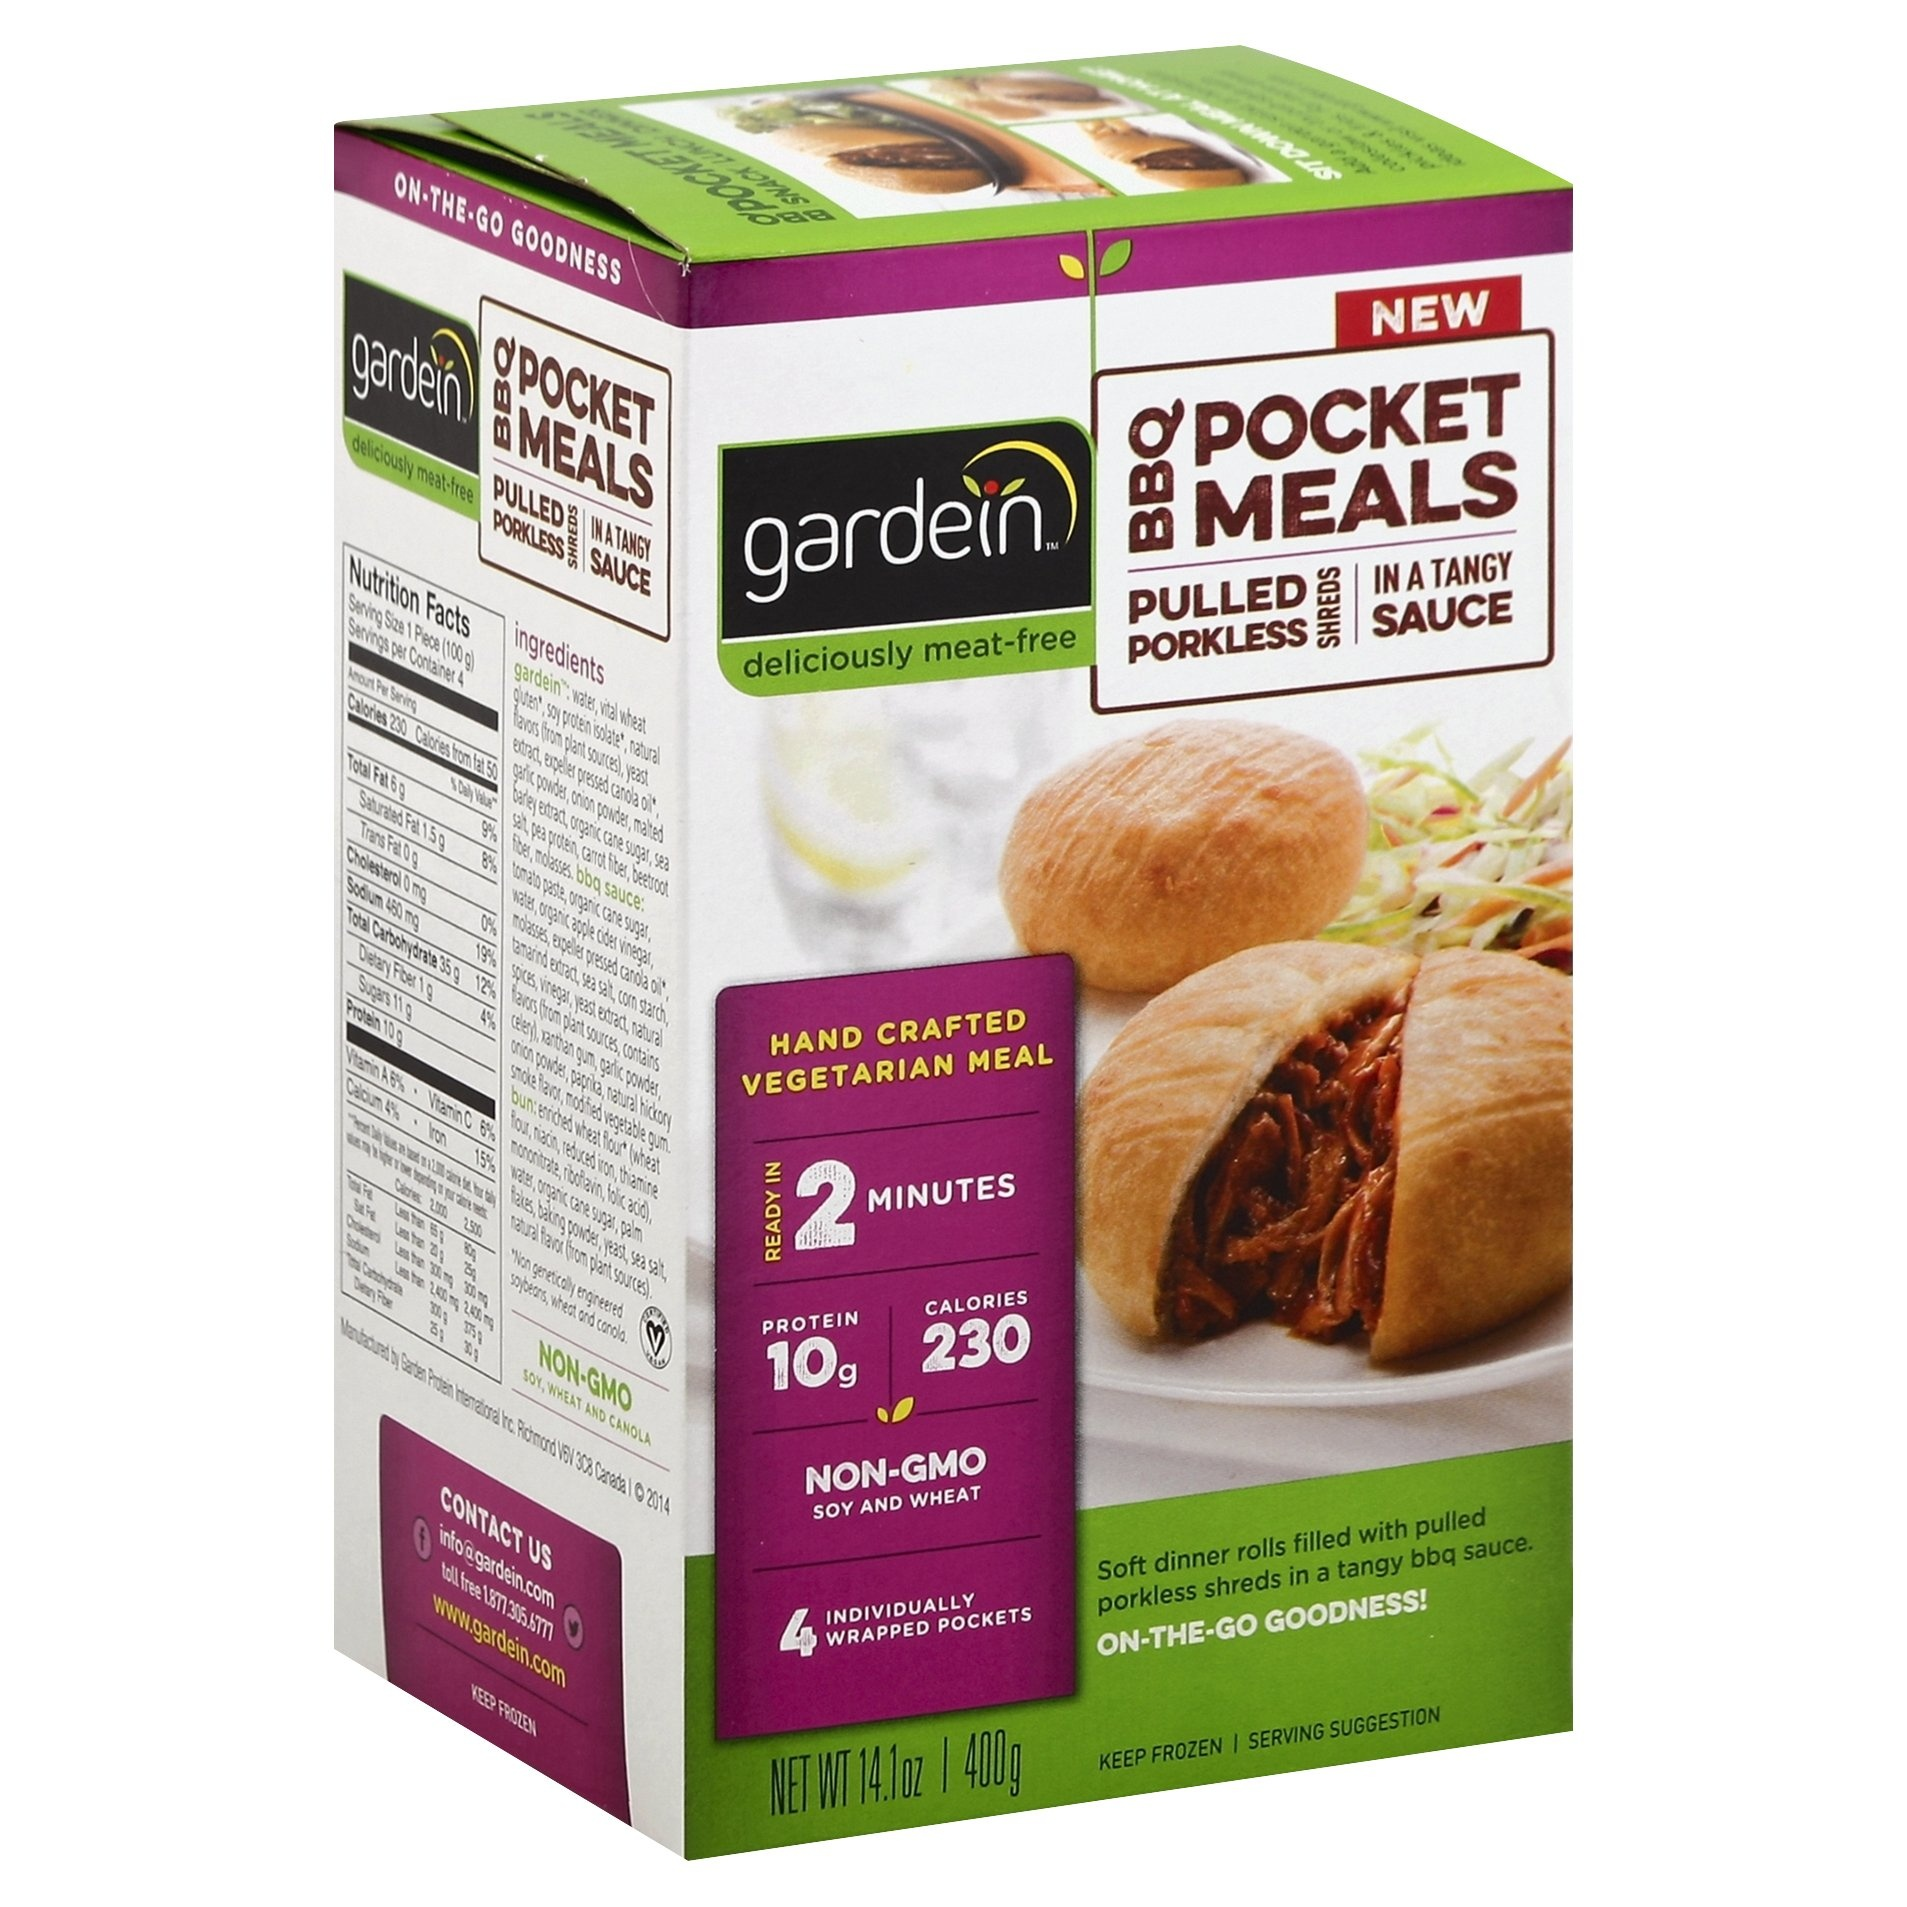 slide 1 of 1, Gardein BBQ Pocket Meals Pulled Porkless Shreds,